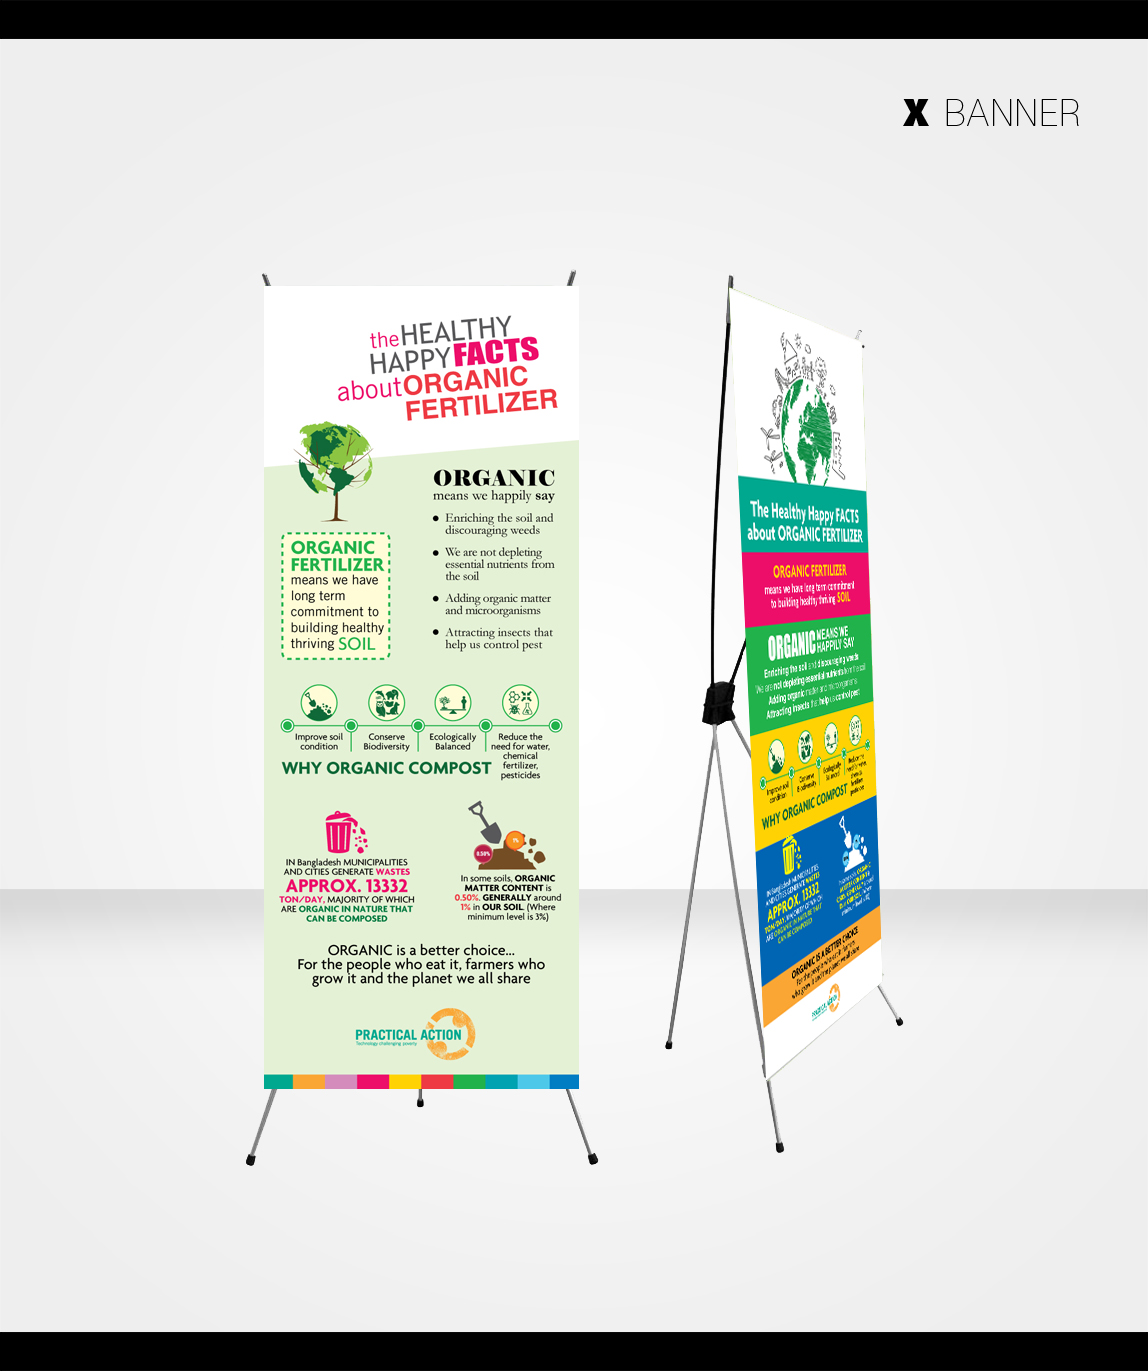 Practical Action X Banner